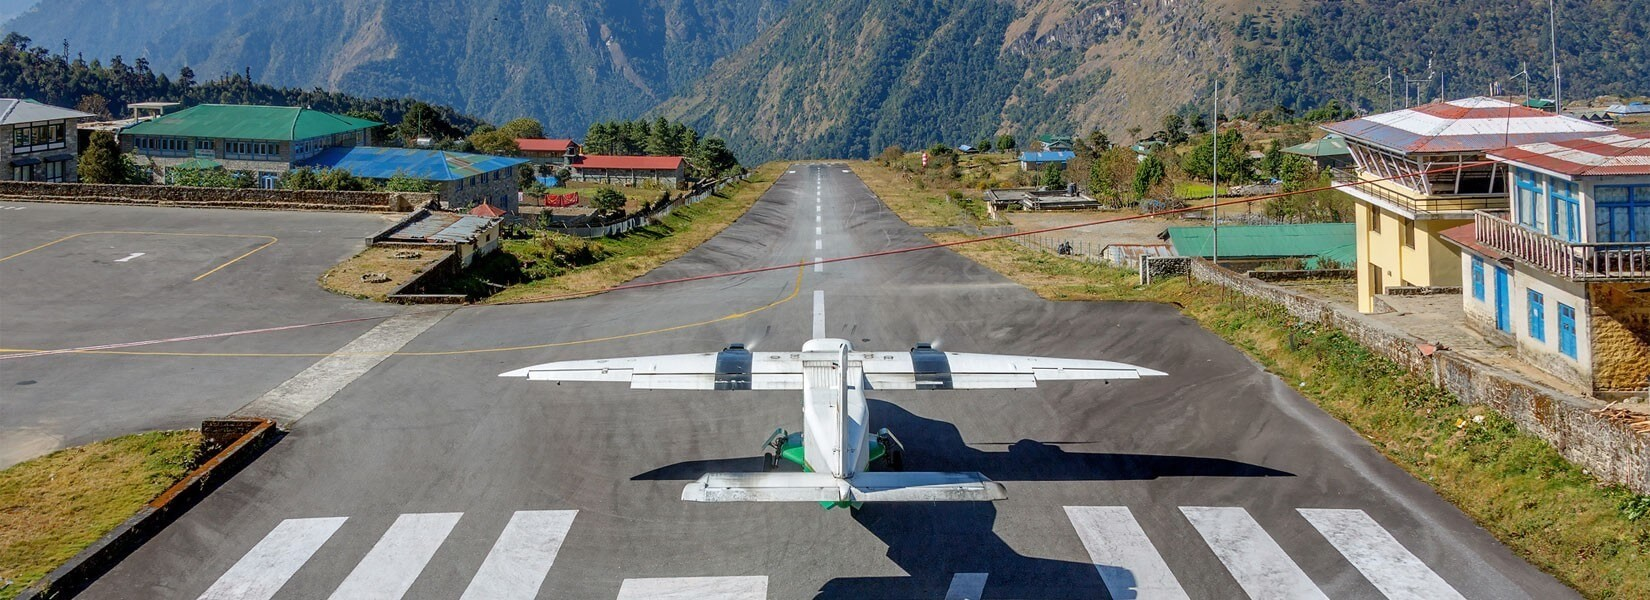 Lukla Airport Fact, Weather, Flight Delays & Cancellation